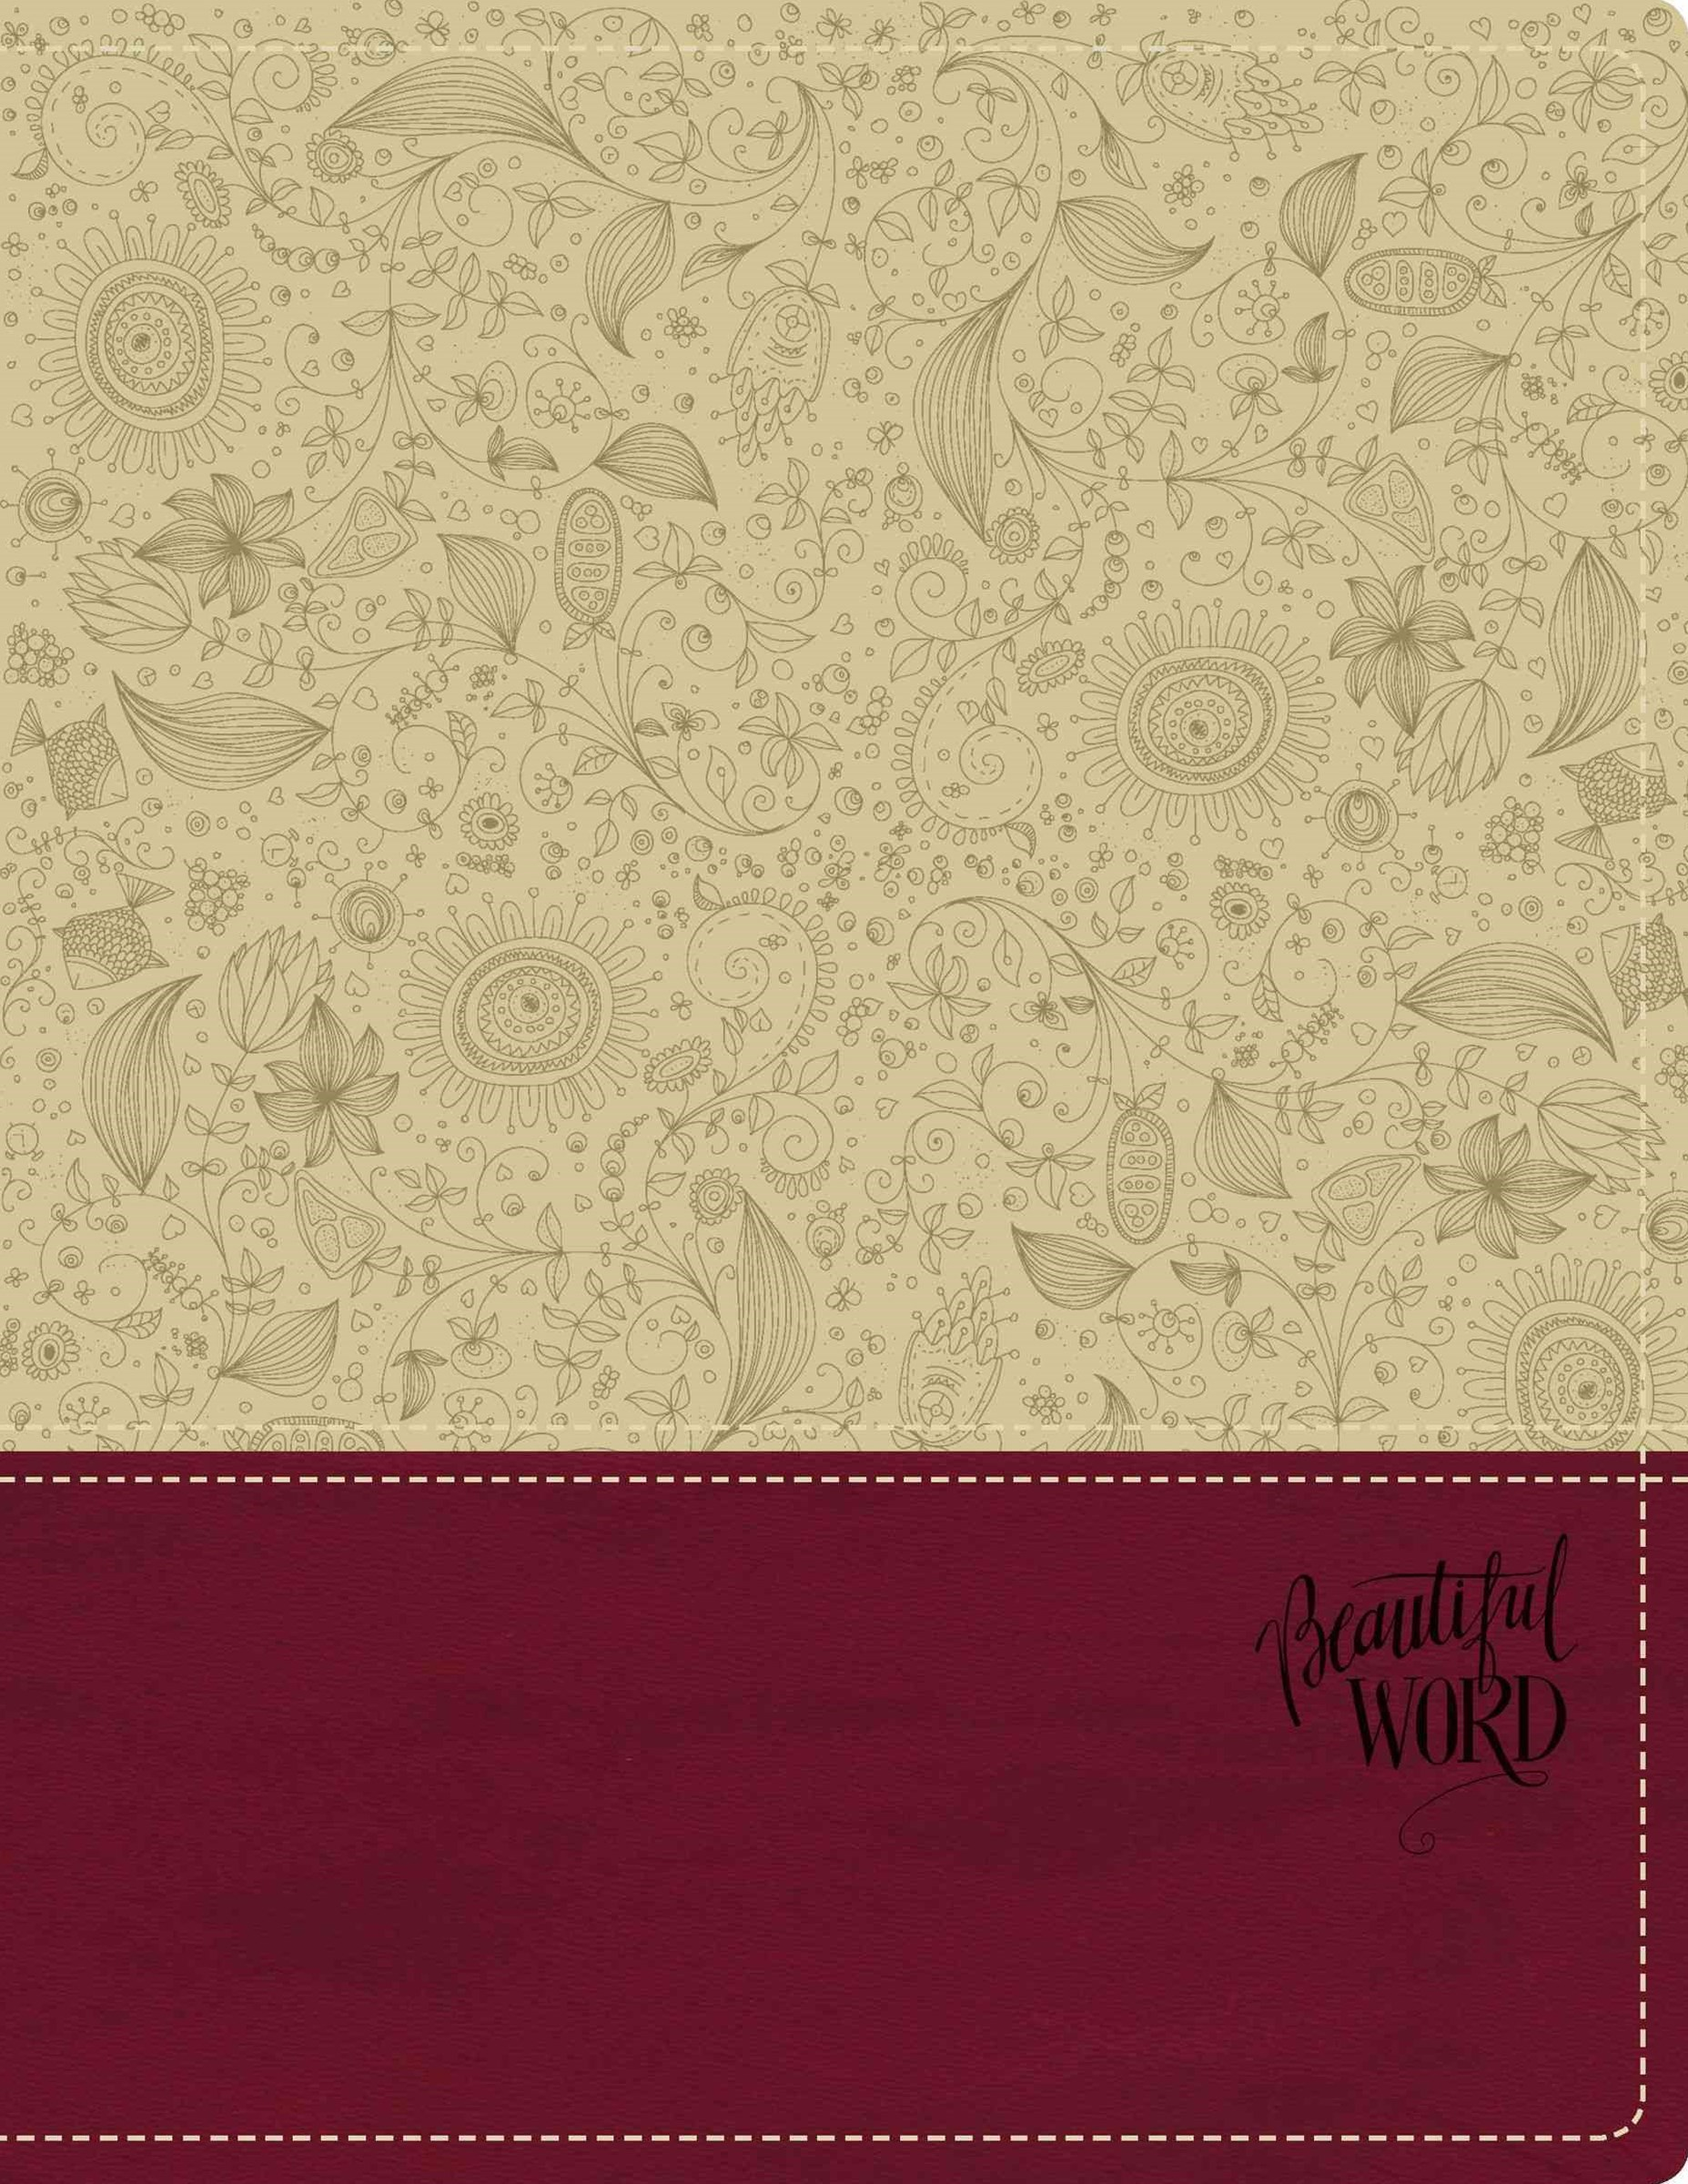 KJV Beautiful Word Bible [Italian Duo-Tone Taupe/Berry]